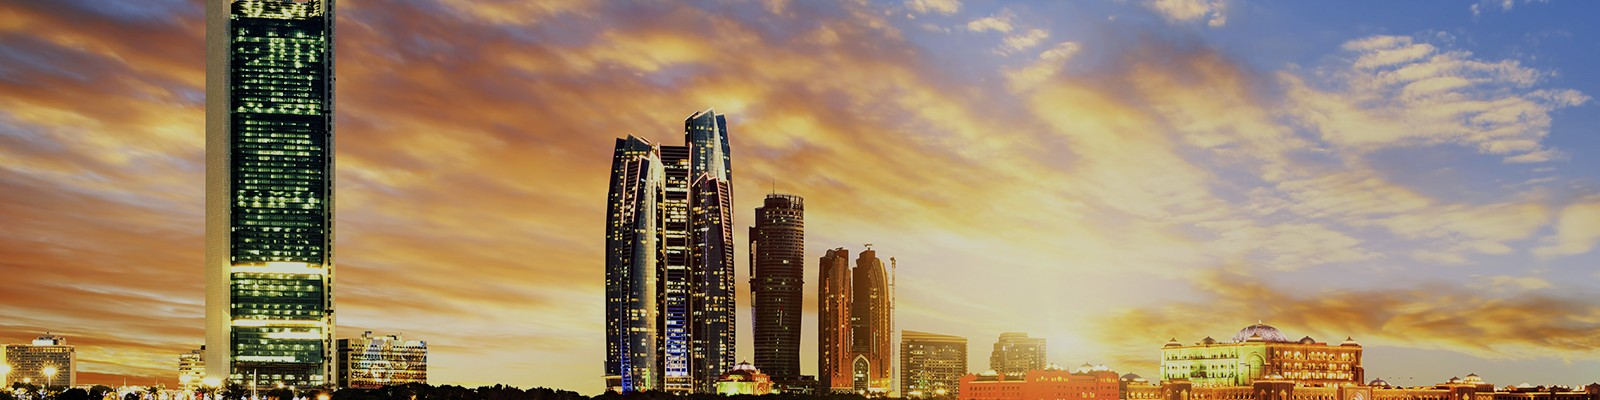 abu-dhabi-luxury holidays-header